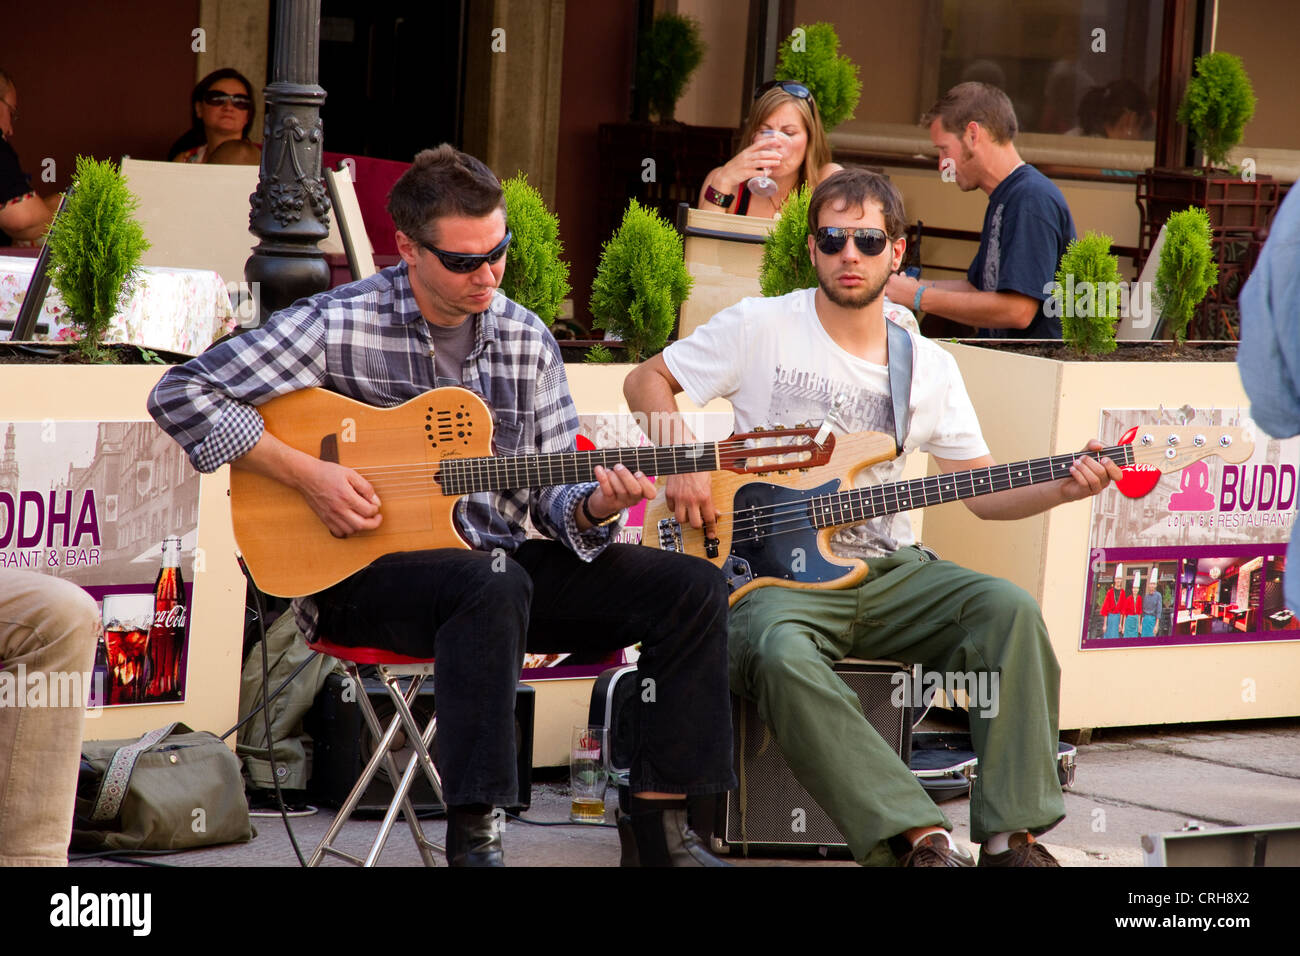 Two men playing guitar in the streets of Gdansk Poland - Stock Image